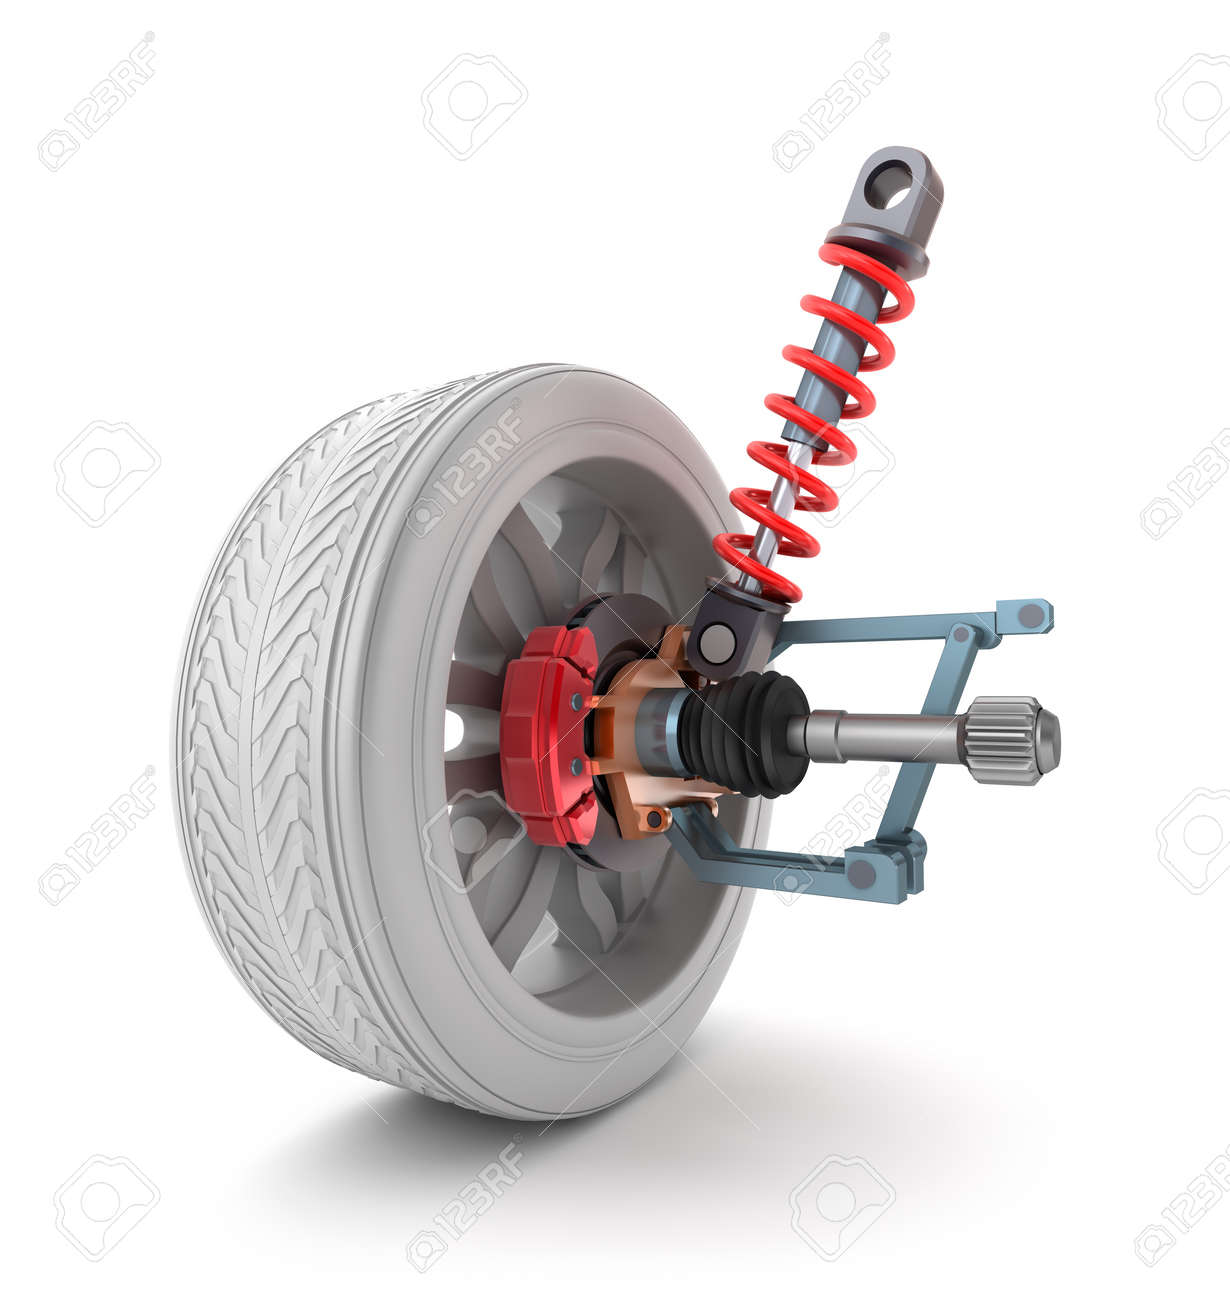 Wheel, shock absorber and brake pads Stock Photo - 20586694